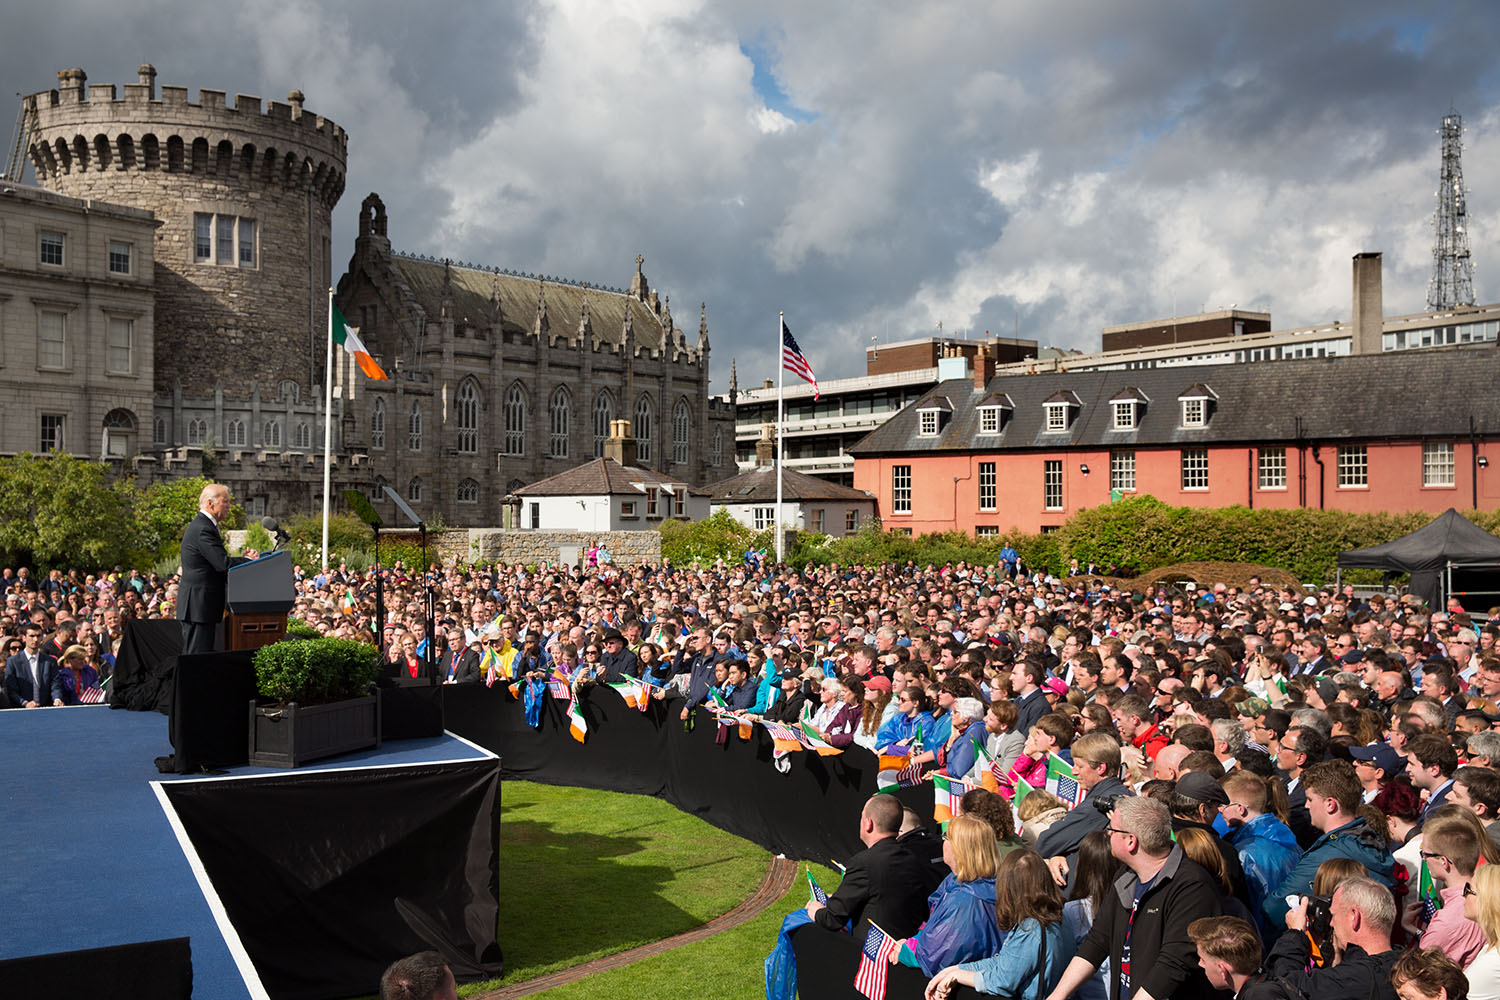 Vice President Joe Biden delivers remarks on the shared heritage of our two nations, and the values of tolerance, diversity and inclusiveness, at Dublin Castle in Dublin, Ireland, June 24, 2016. (Official White House Photo by David Lienemann)